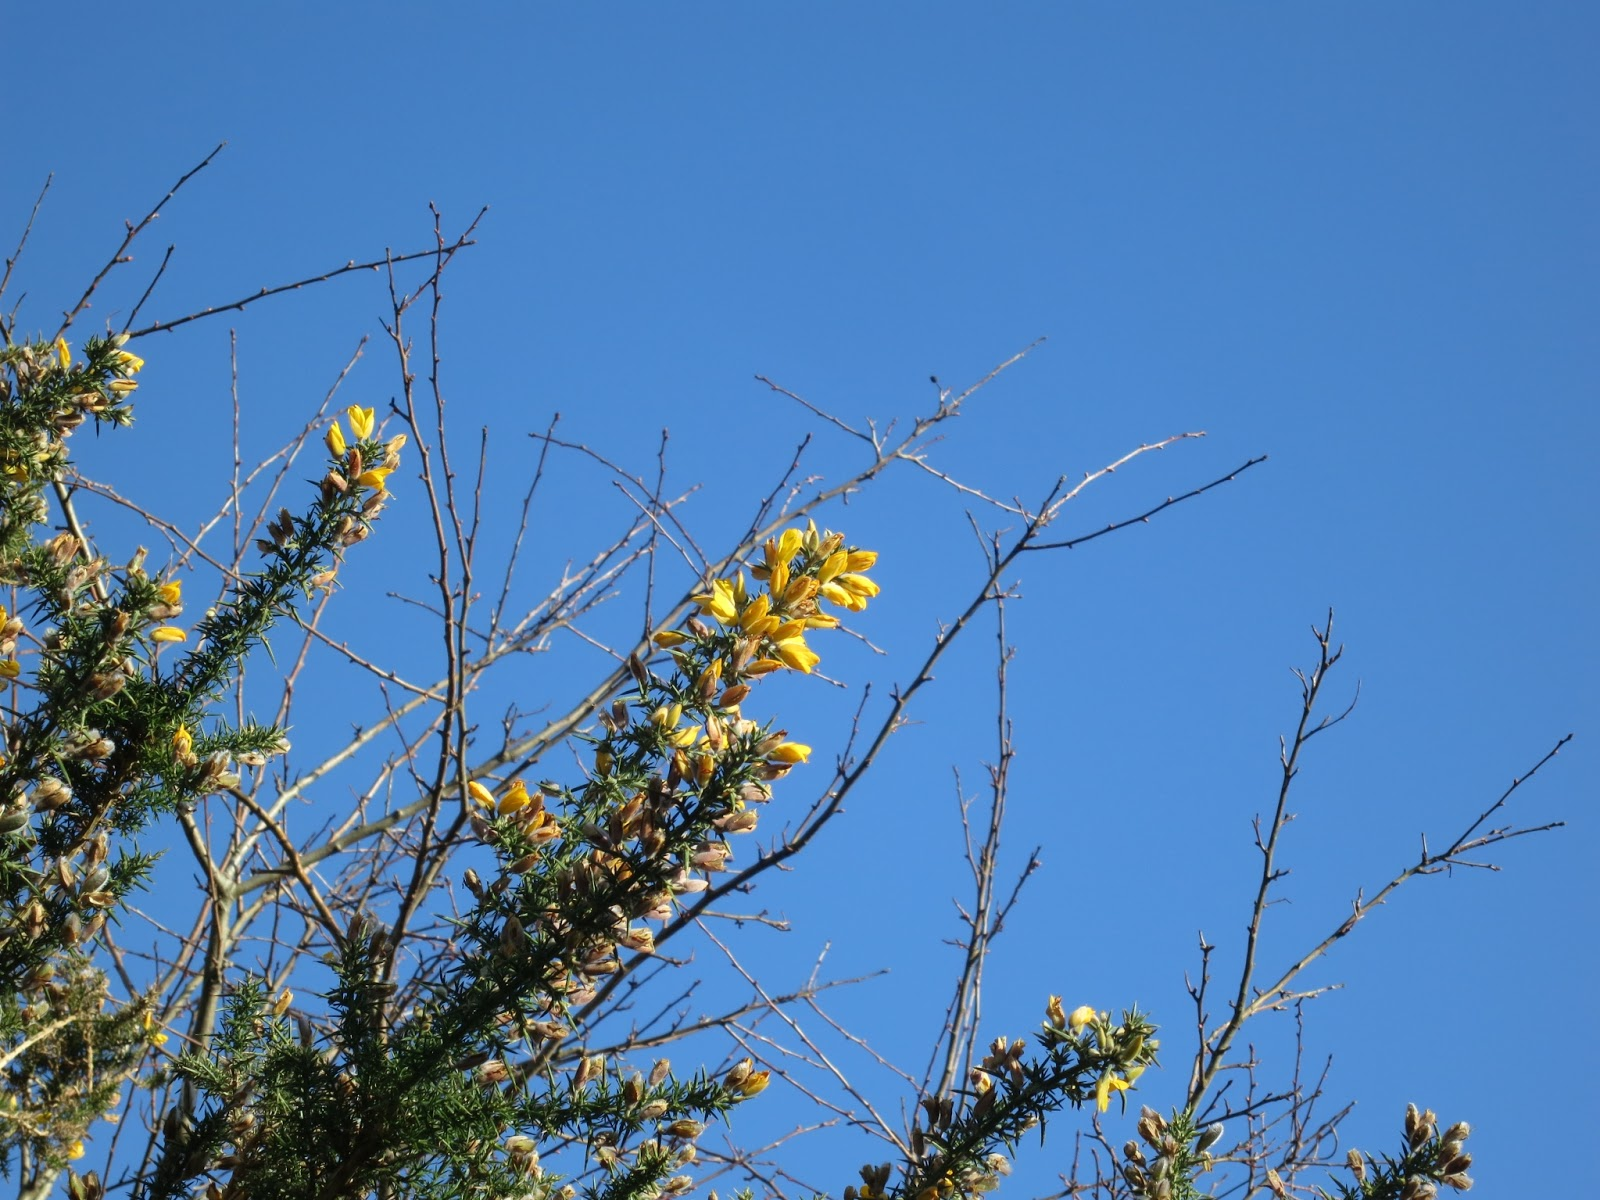 Yellow gorse flowers, bare hawthorn twigs, blue sky